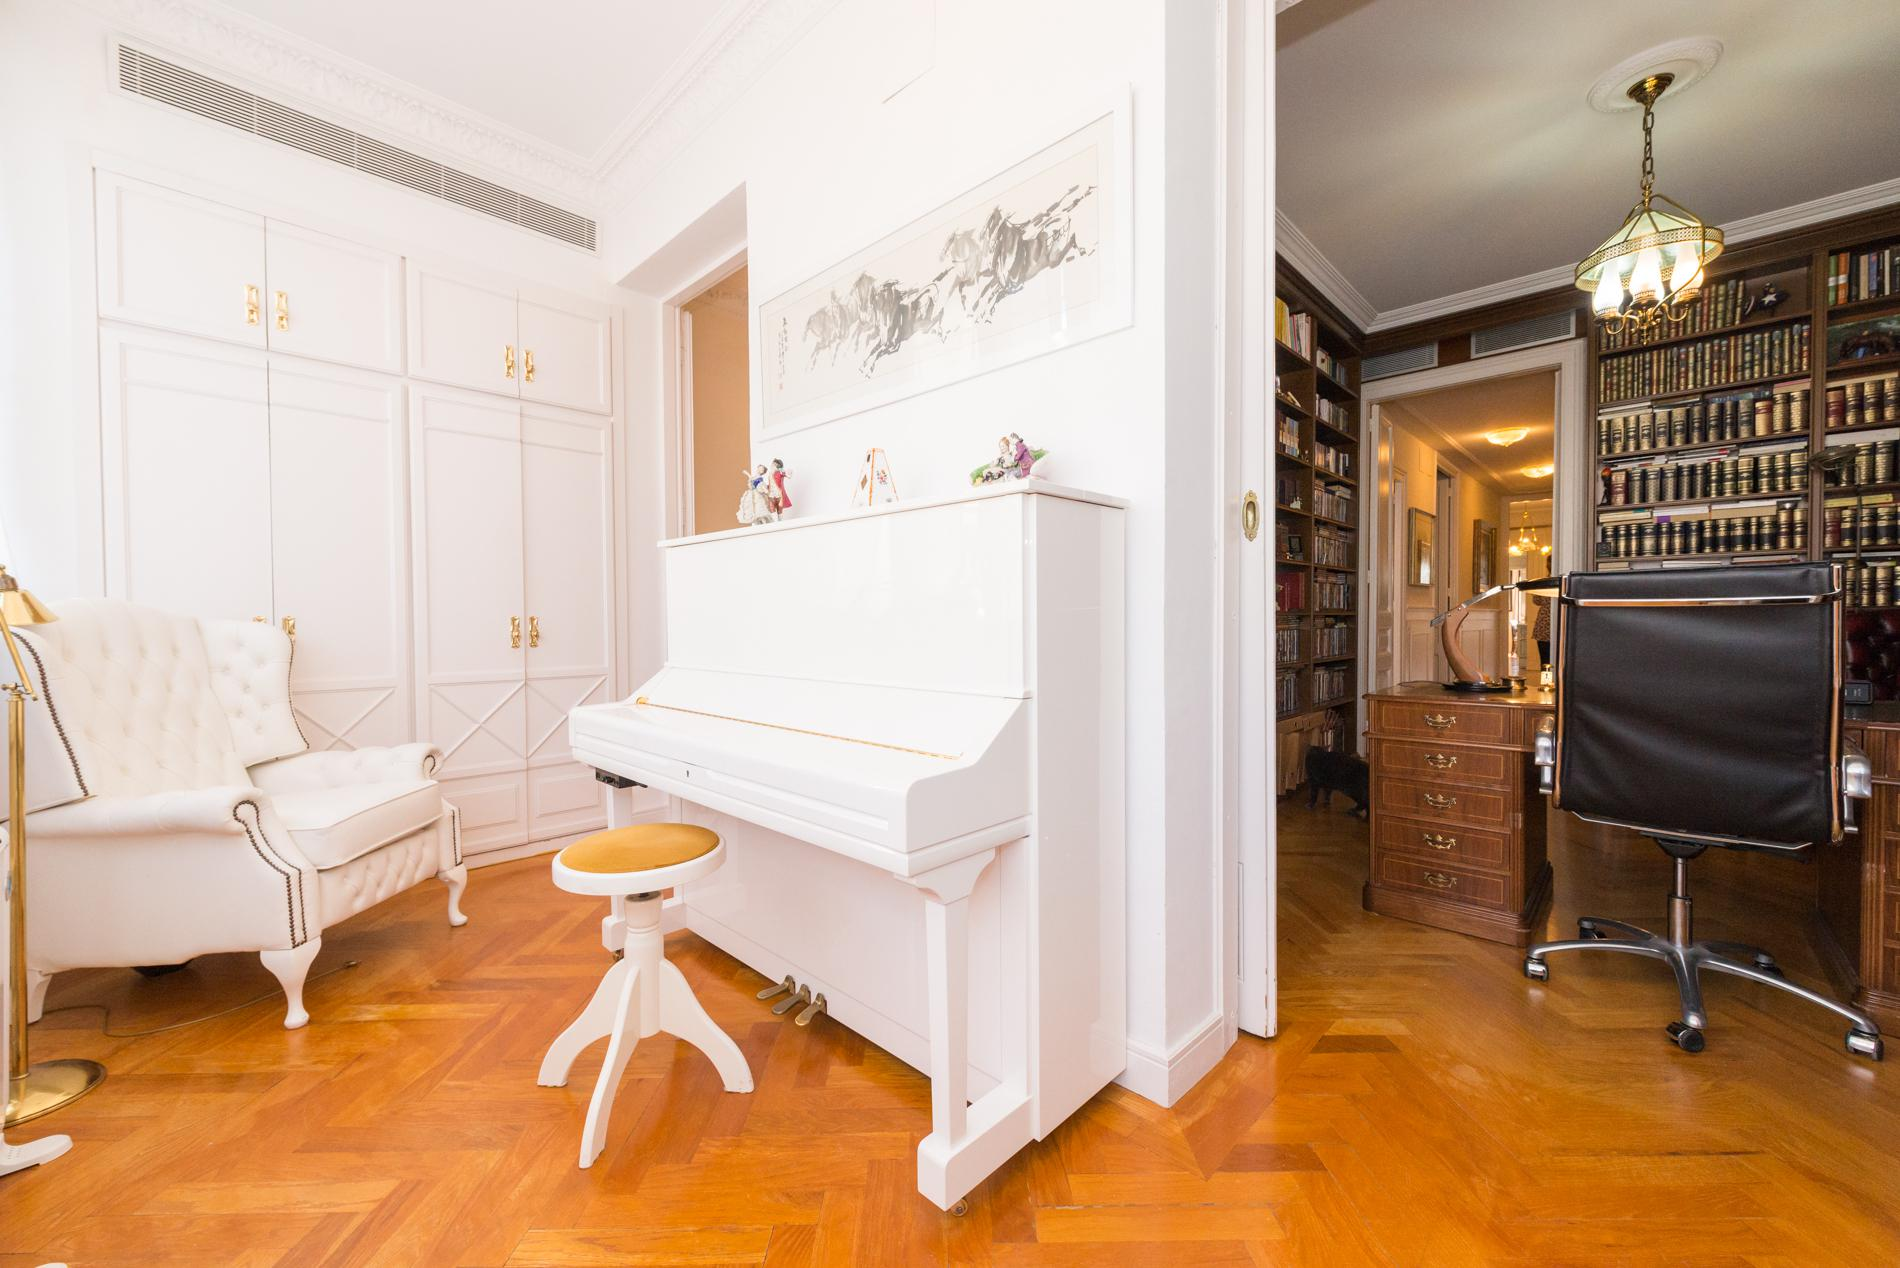 174066 Flat for sale in Eixample, Antiga Esquerre Eixample 11